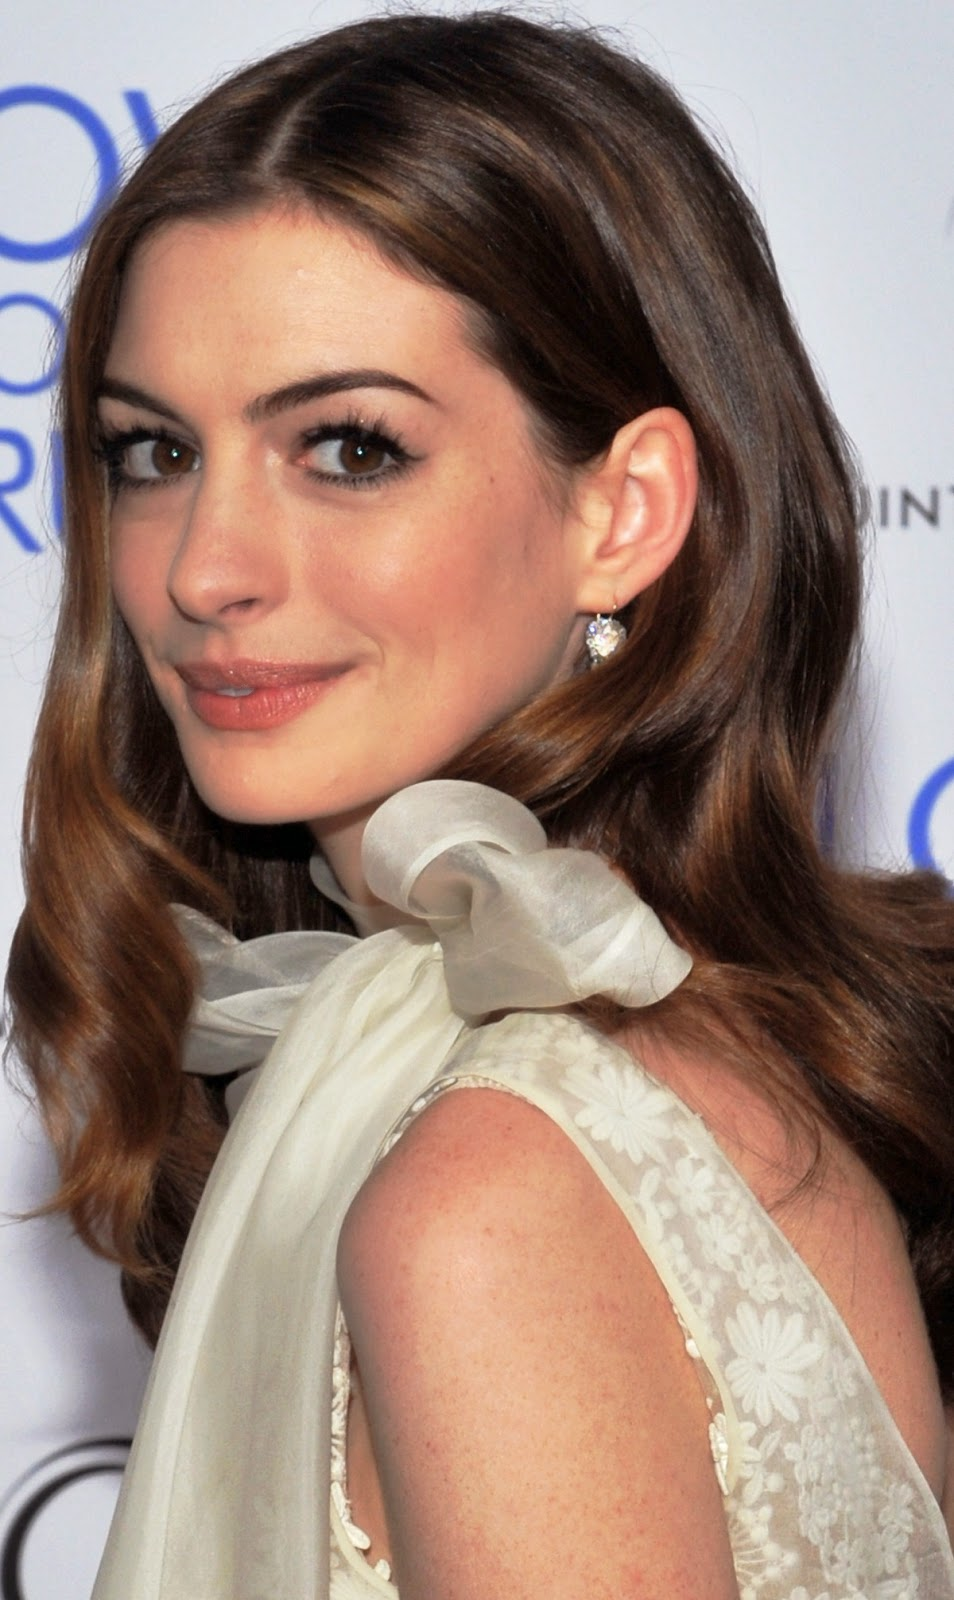 Anne Hathaway born November 12, 1982 (age 35) Anne Hathaway born November 12, 1982 (age 35) new pics